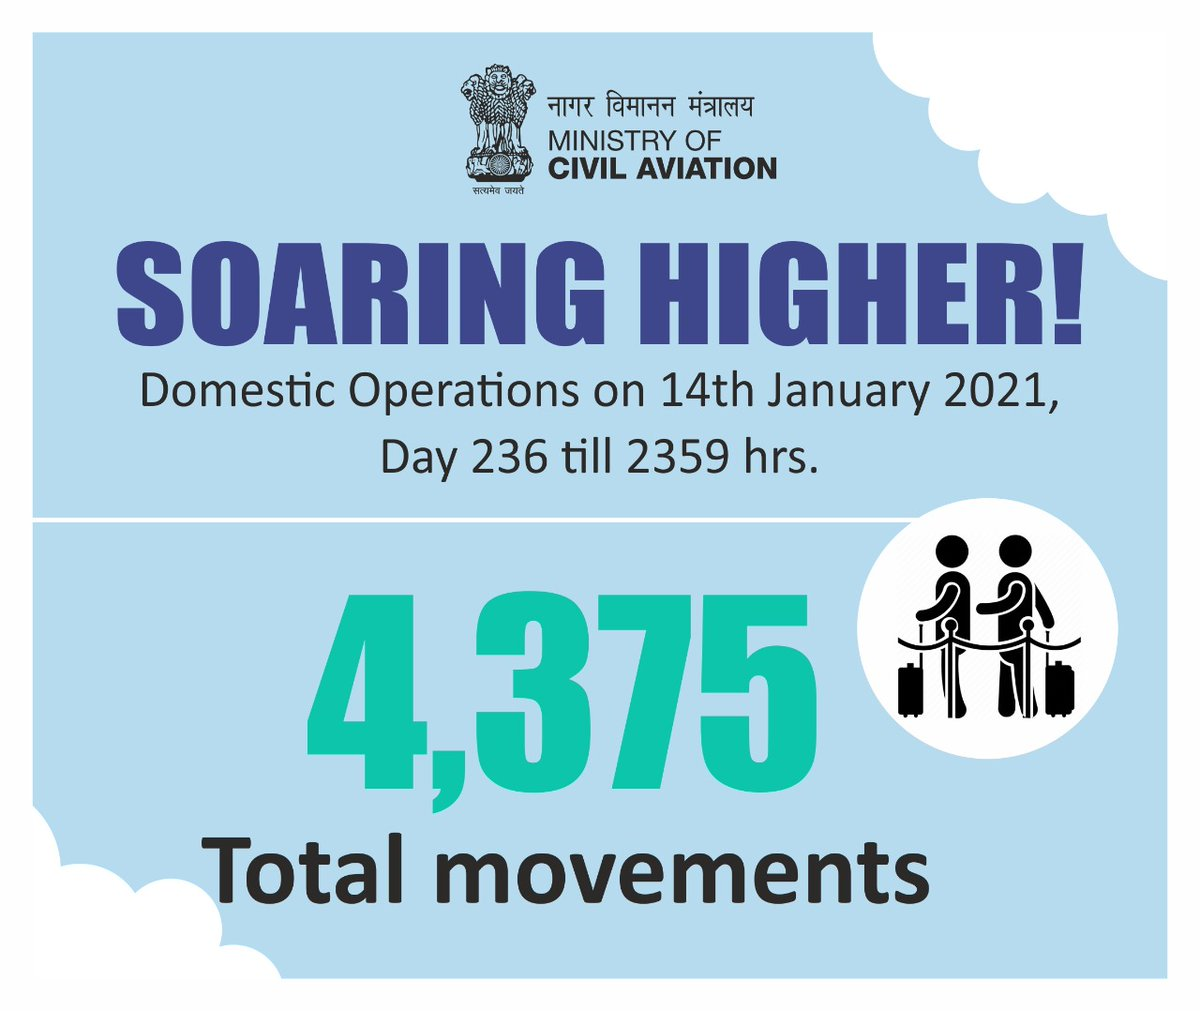 India soaring higher!  A total of 4375 flight movements took place across the country on 14th January. Aviation operations continue to soar! #SabUdenSabJuden #IndiaFliesHigh